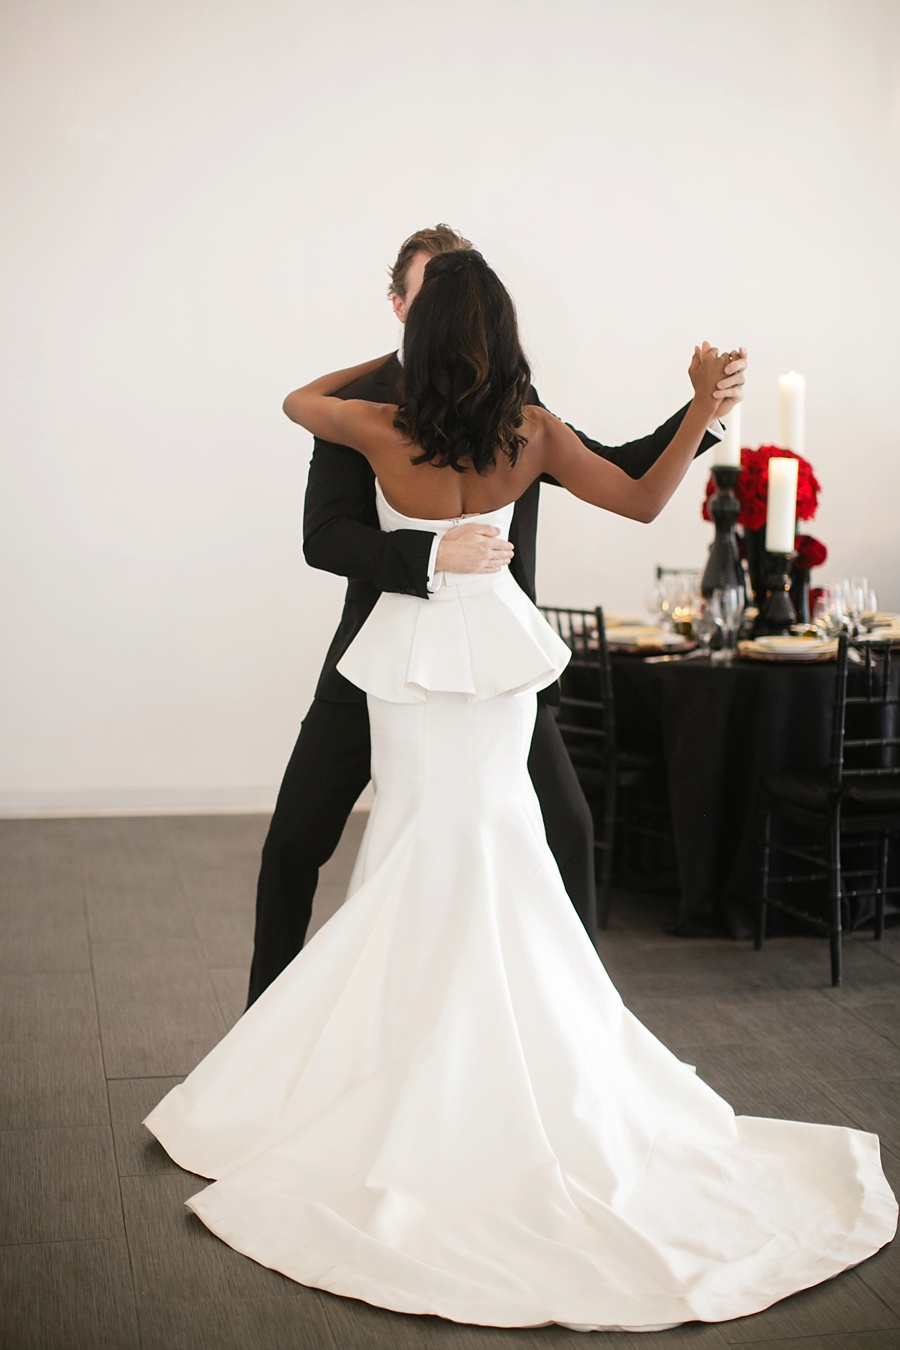 Scandal Olivia Pope and Fitz Wedding- By petronella5